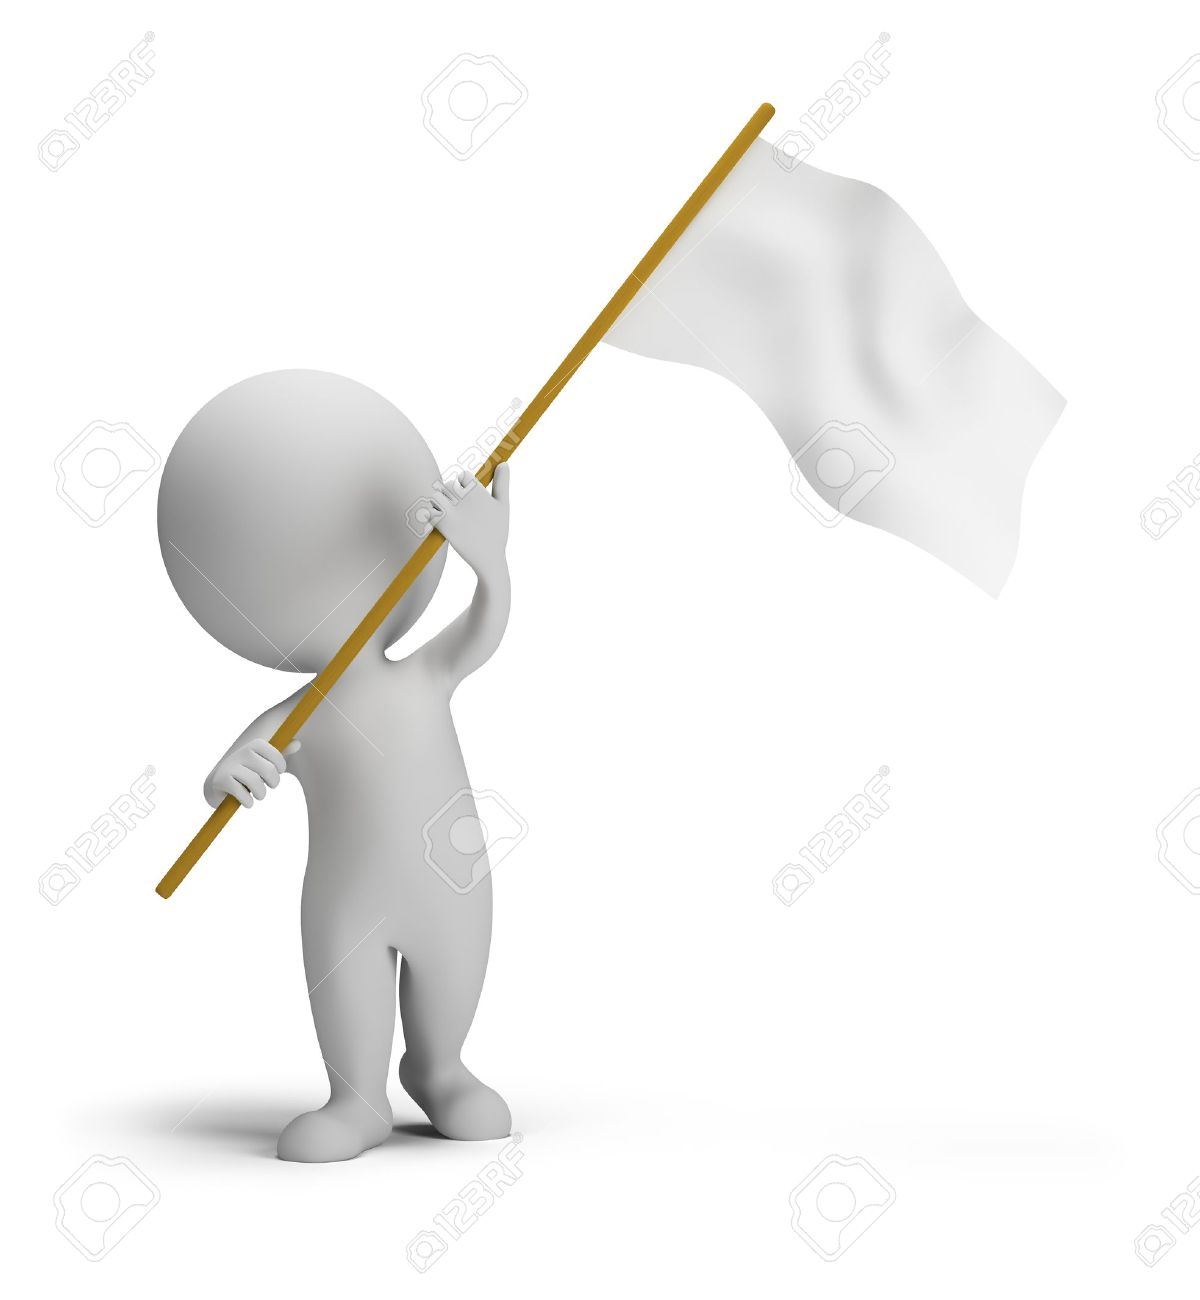 3d small people waved flags. 3d image. Isolated white background. Stock Photo - 15417590